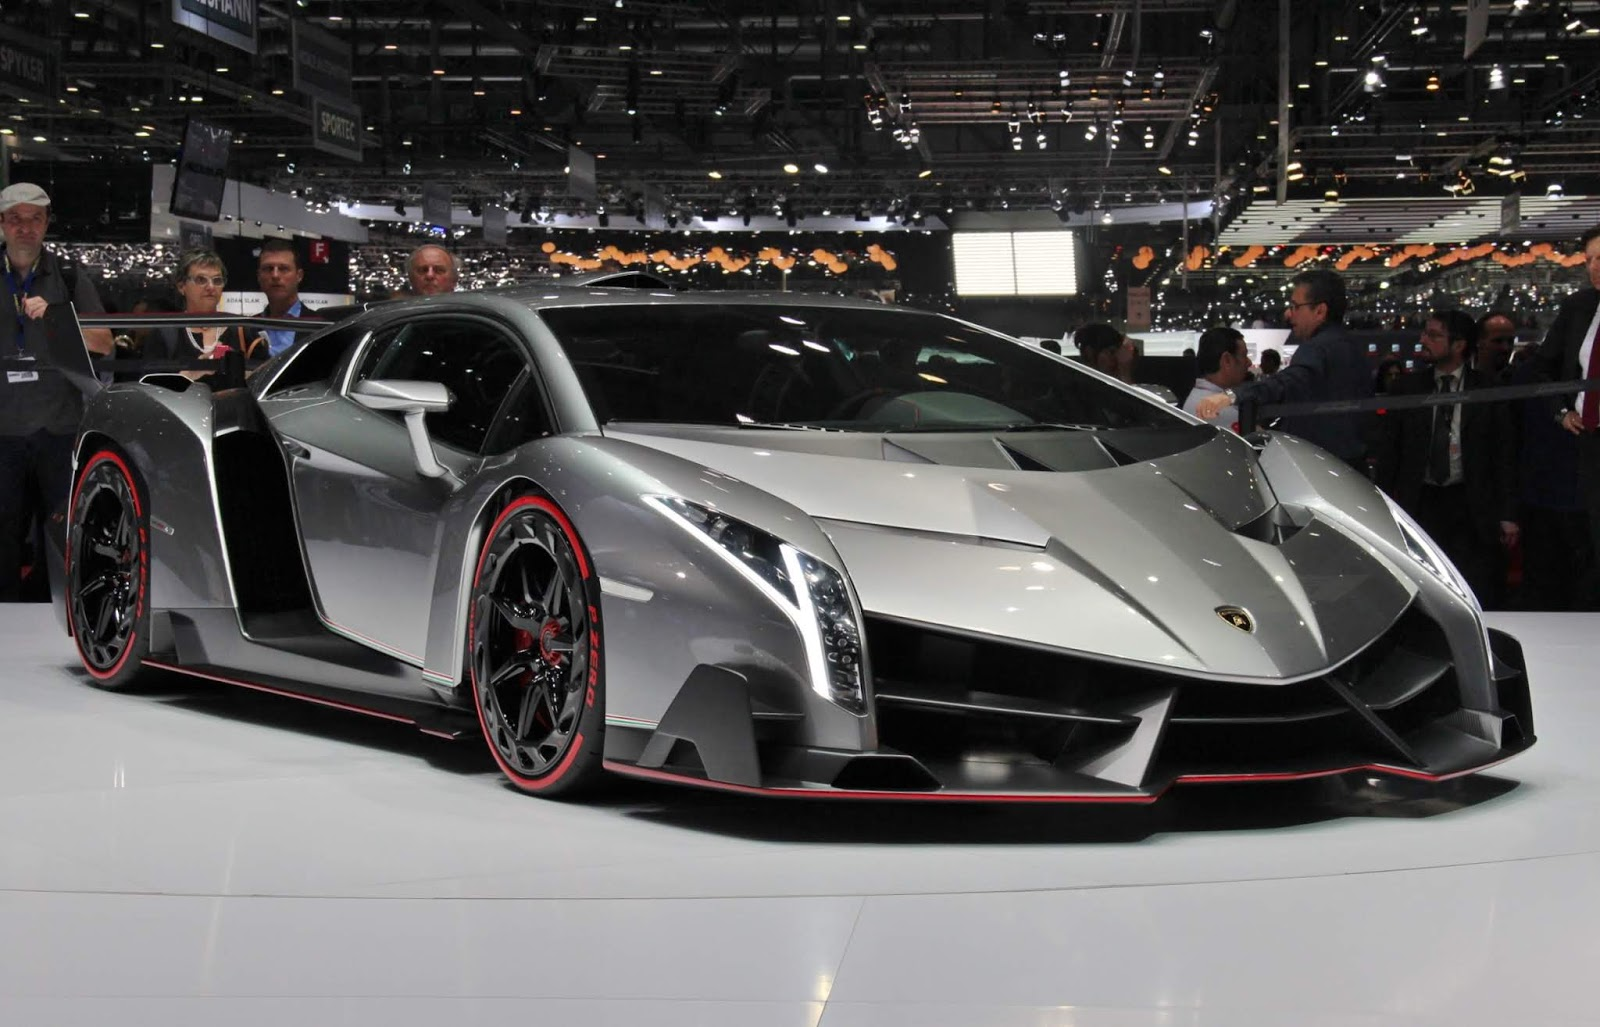 Lamborghini Veneno: $4.5 Million